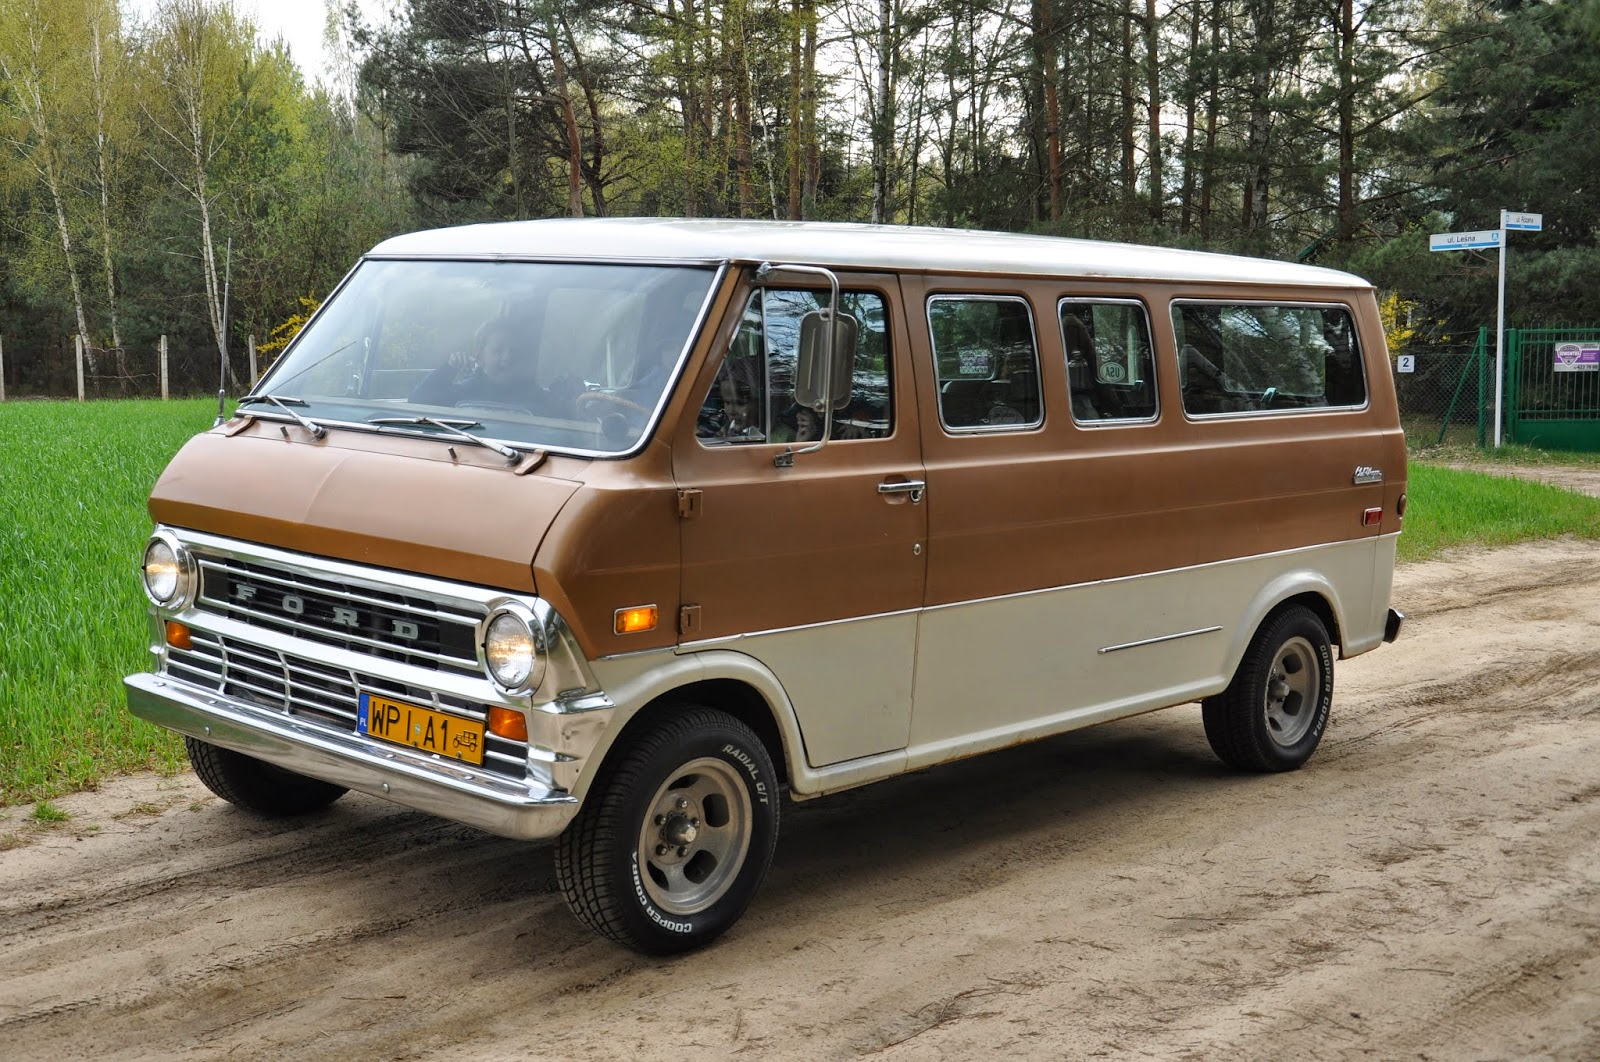 rebel rides behind the iron curtain 1972 ford chateau club wagon econoline a milestone van. Black Bedroom Furniture Sets. Home Design Ideas